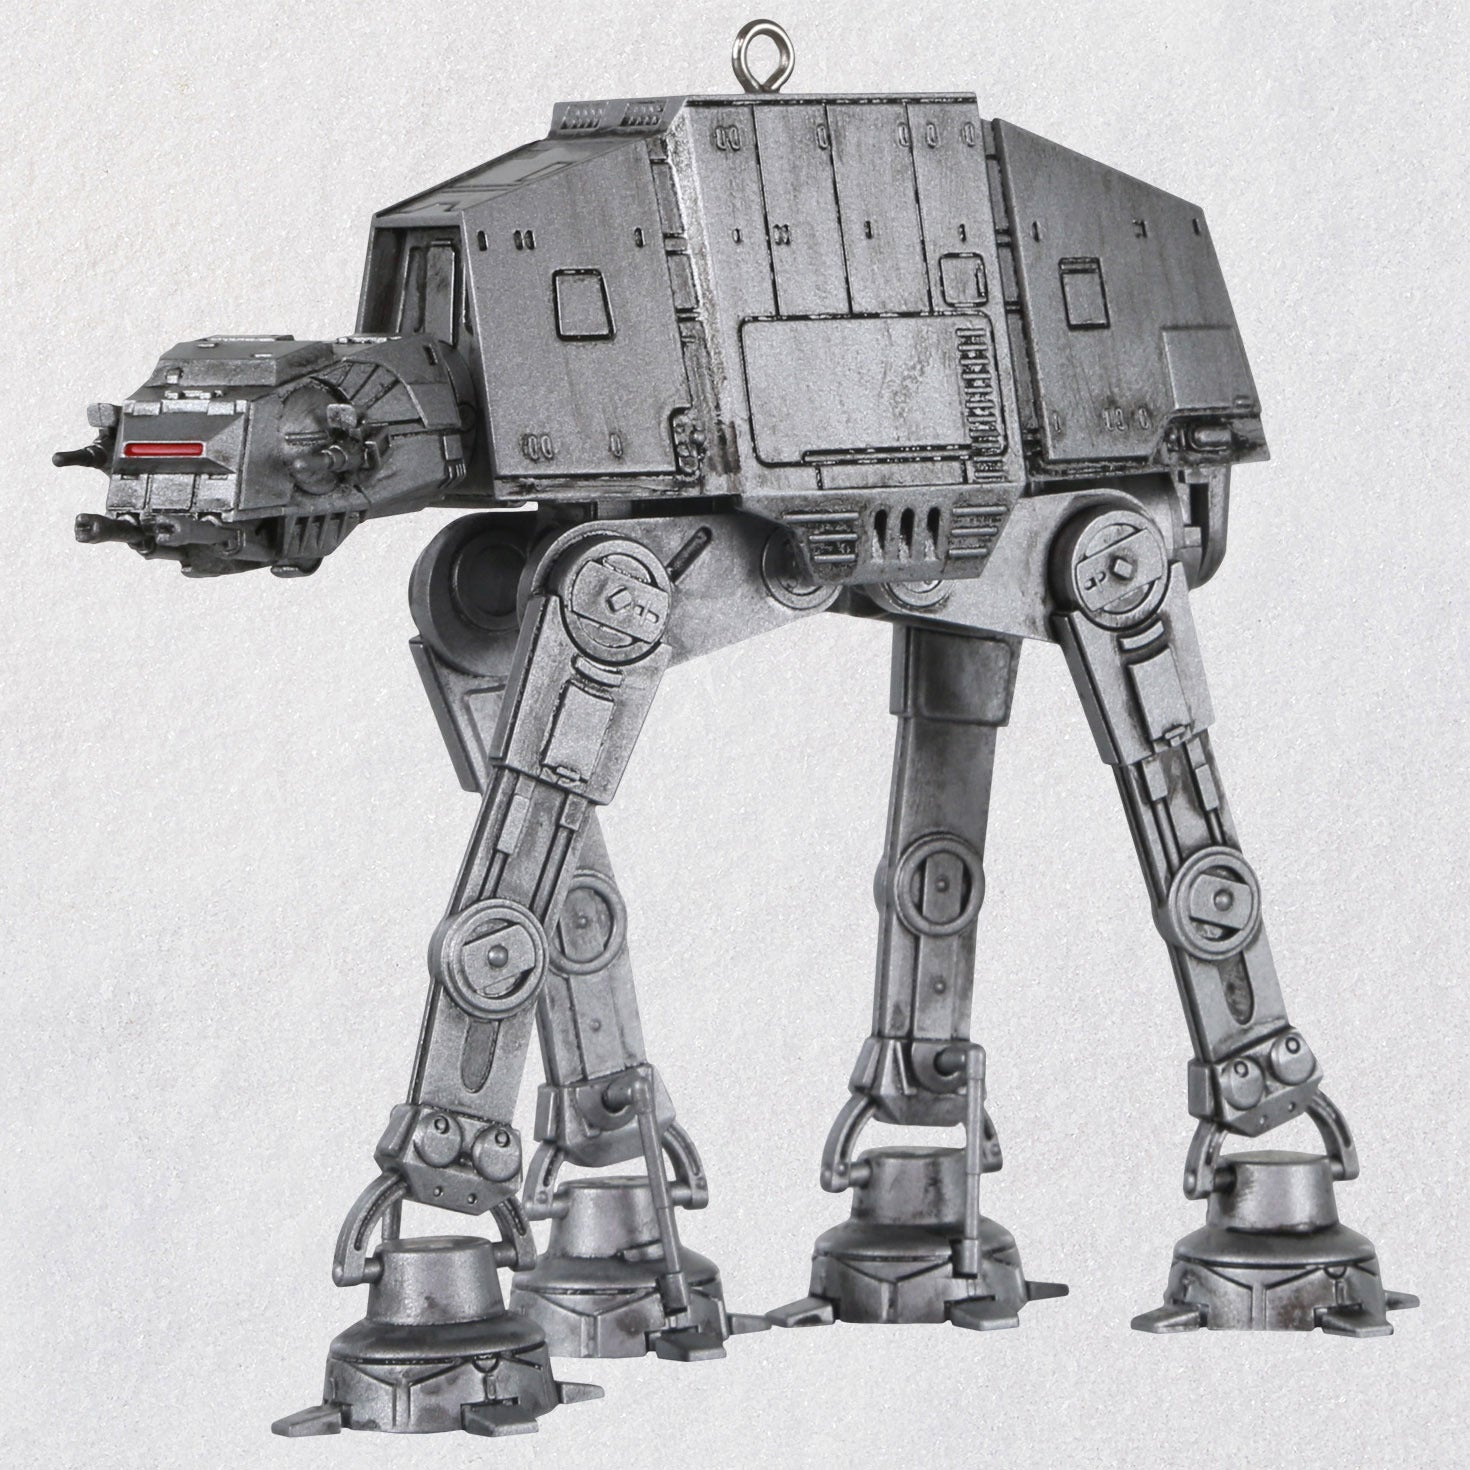 Hallmark Star Wars: The Empire Strikes Back™ Imperial AT-AT Walker™ Metal Ornament